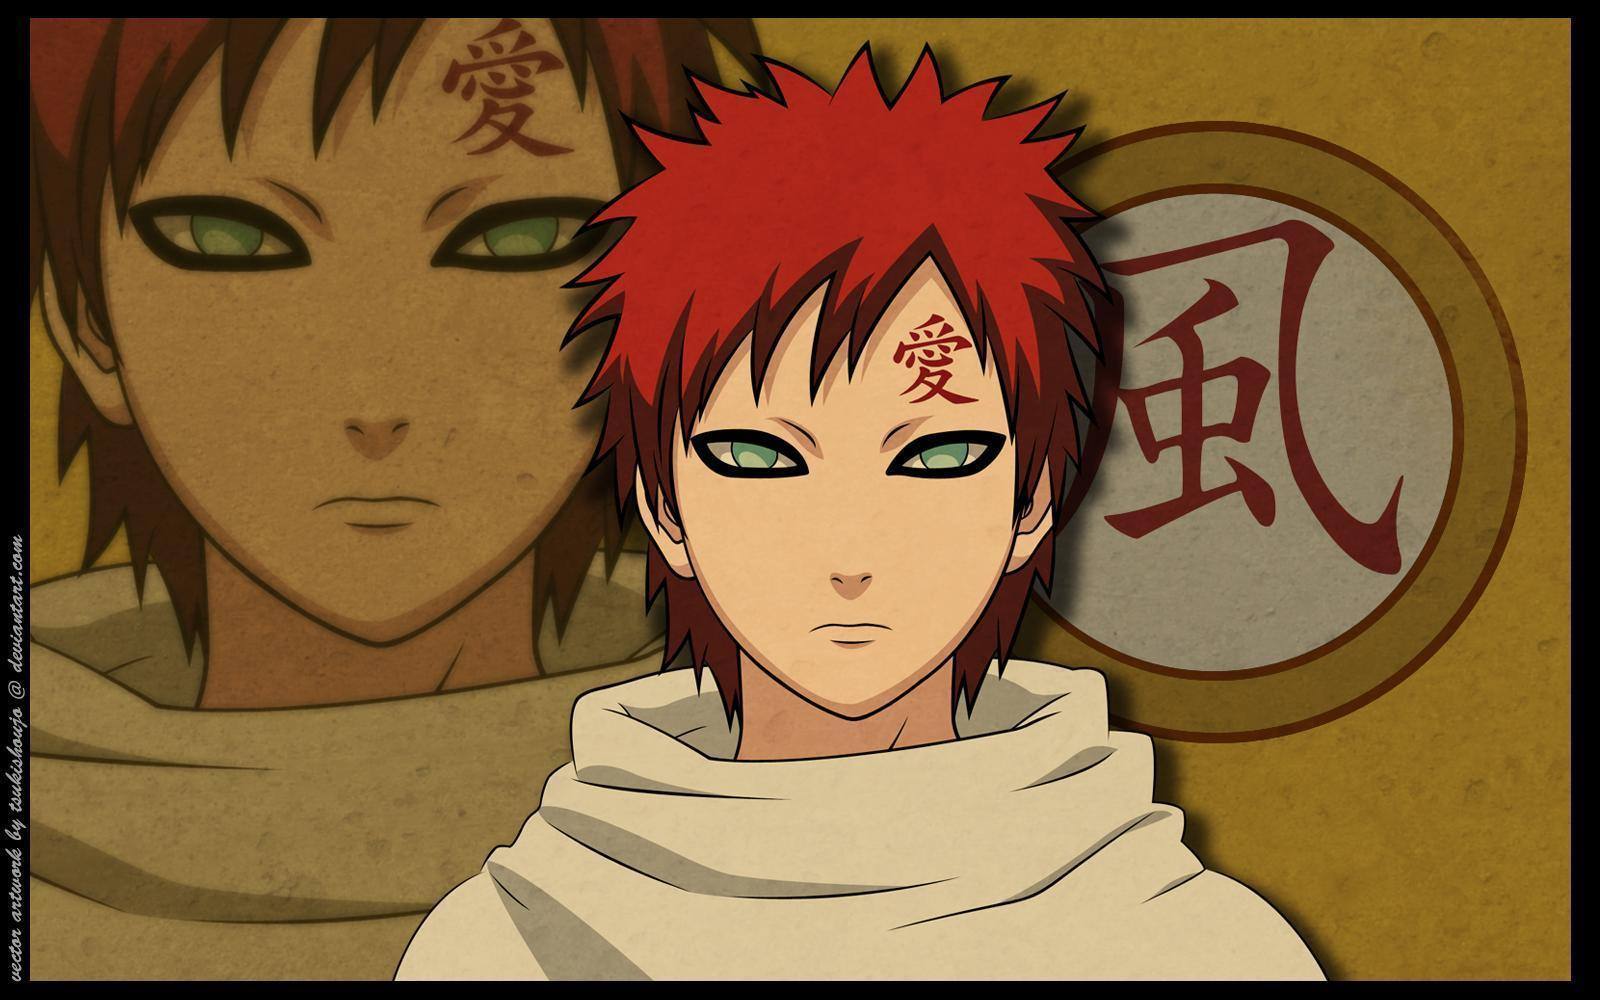 gaara naruto - photo #4